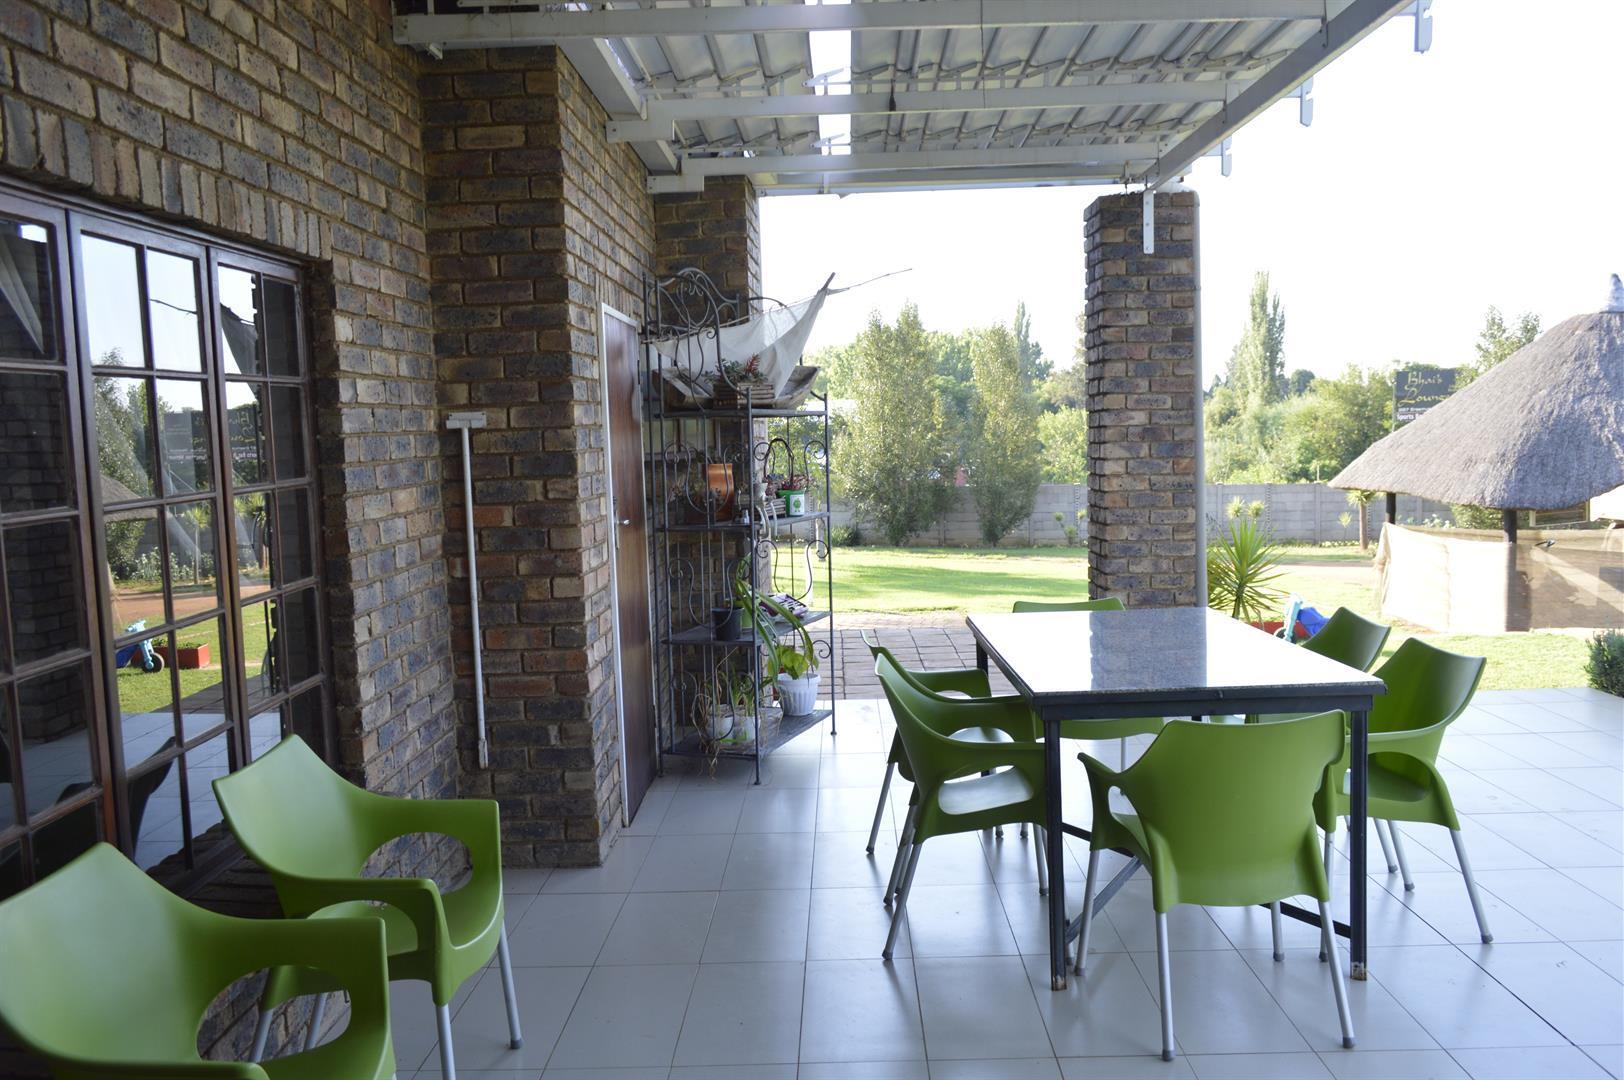 Raslouw A H property for sale. Ref No: 13442161. Picture no 21